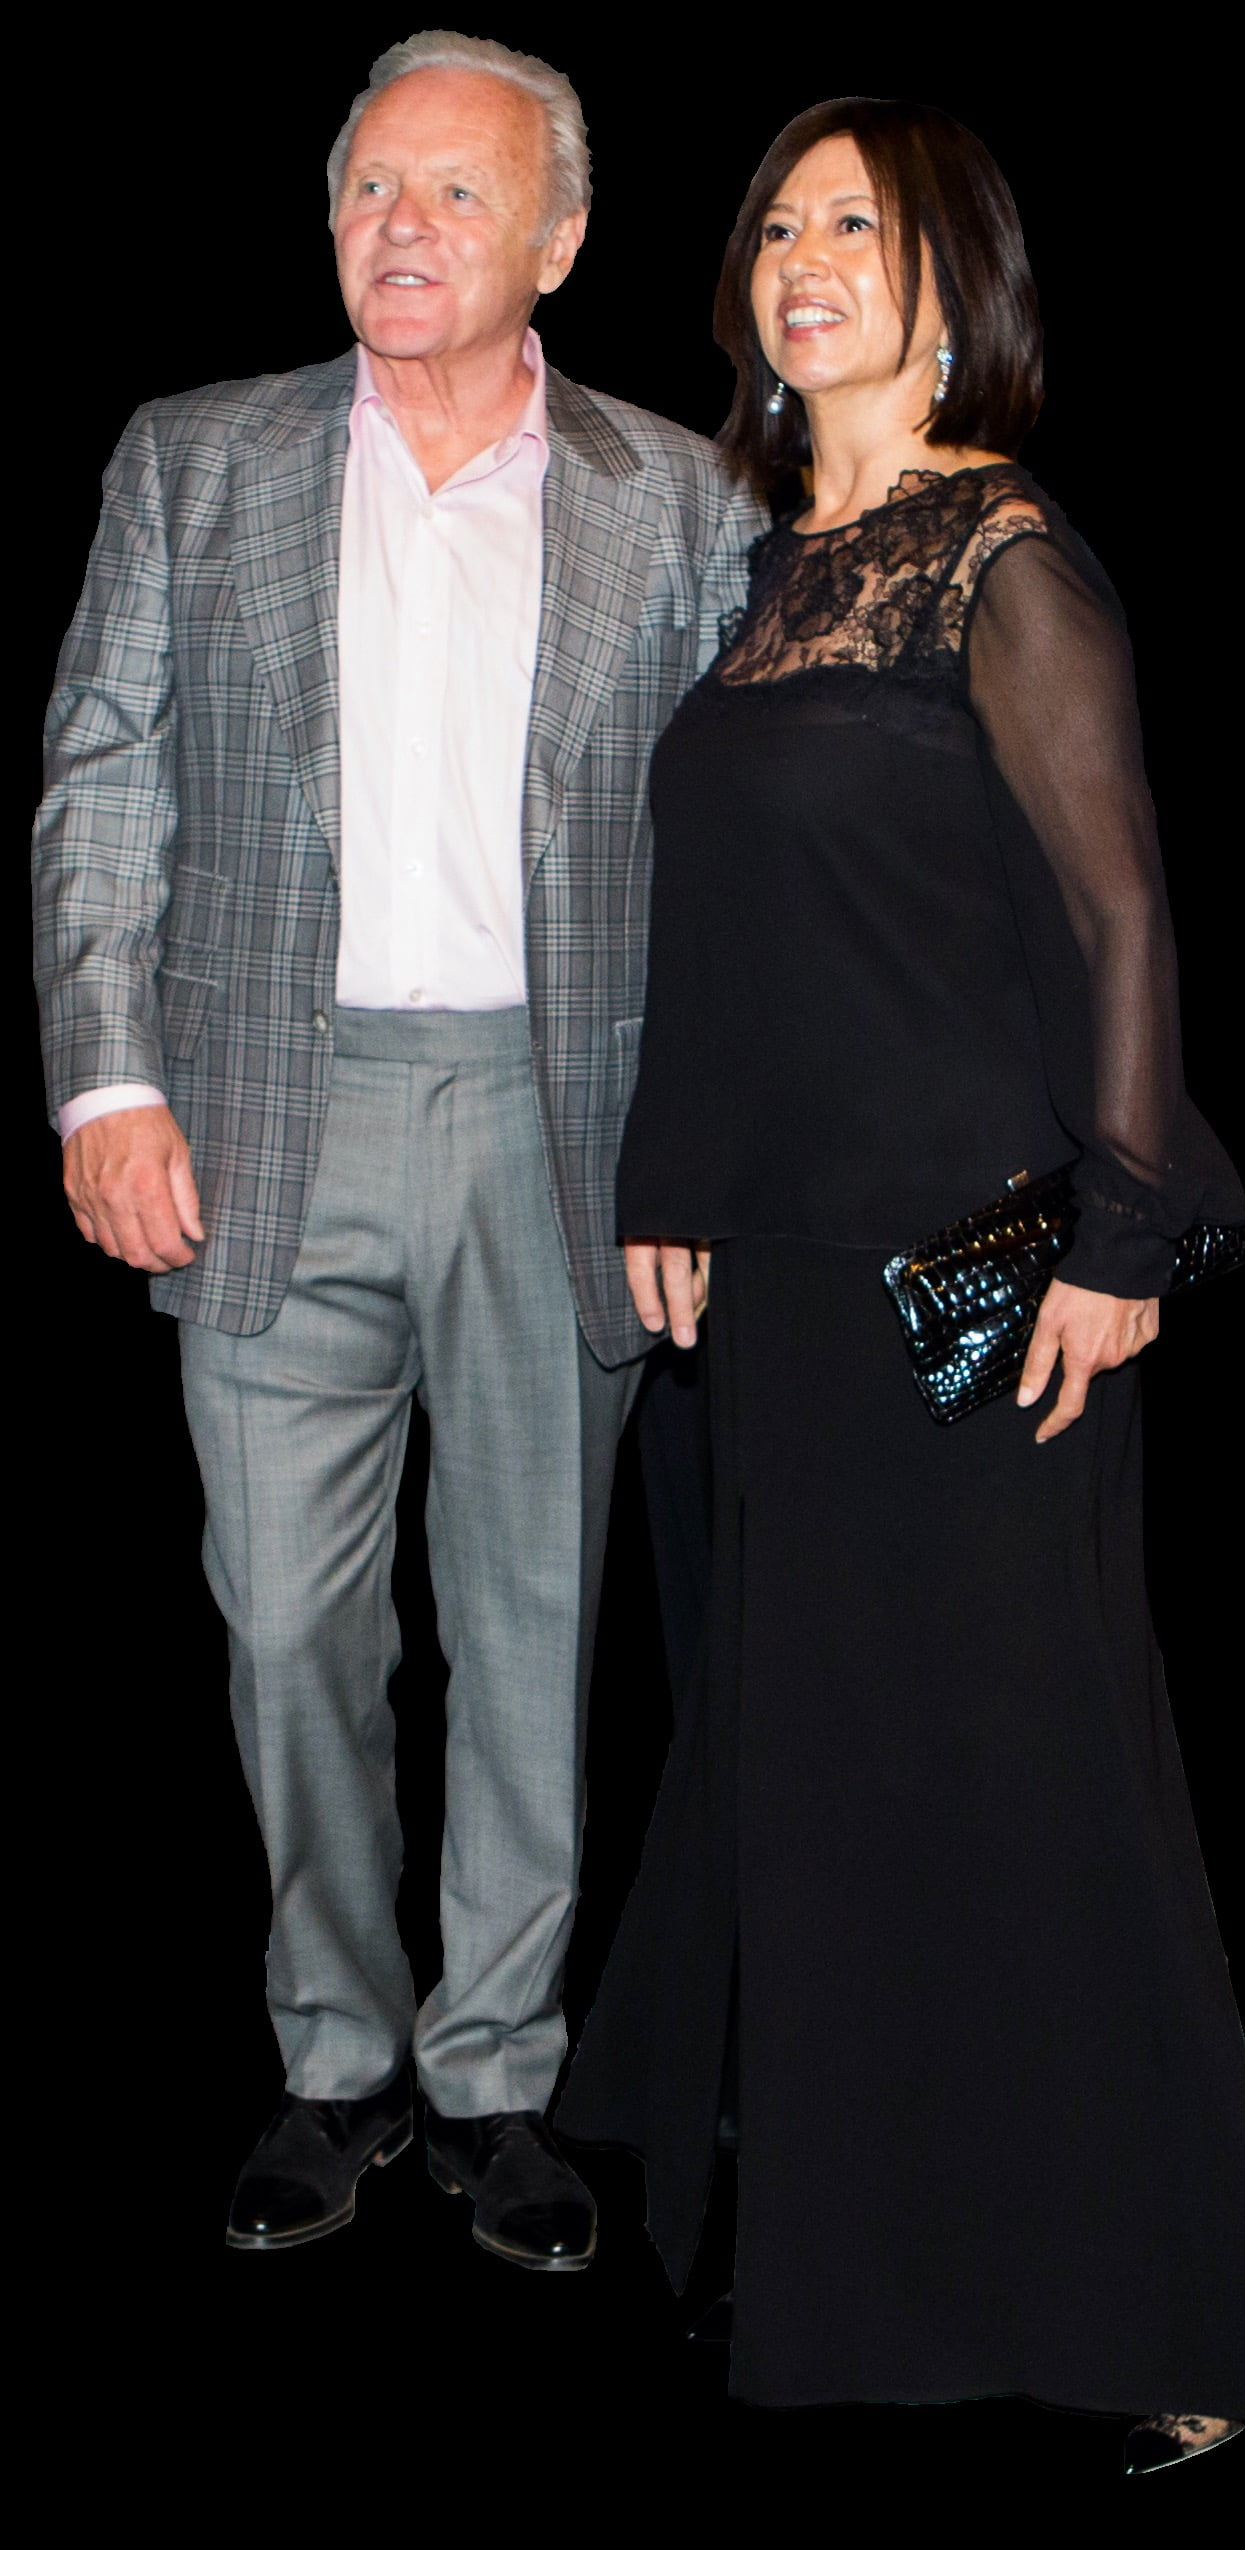 HOW DOES STELLA HOPKINS DO IT? An interview with the wife of Anthony Hopkins